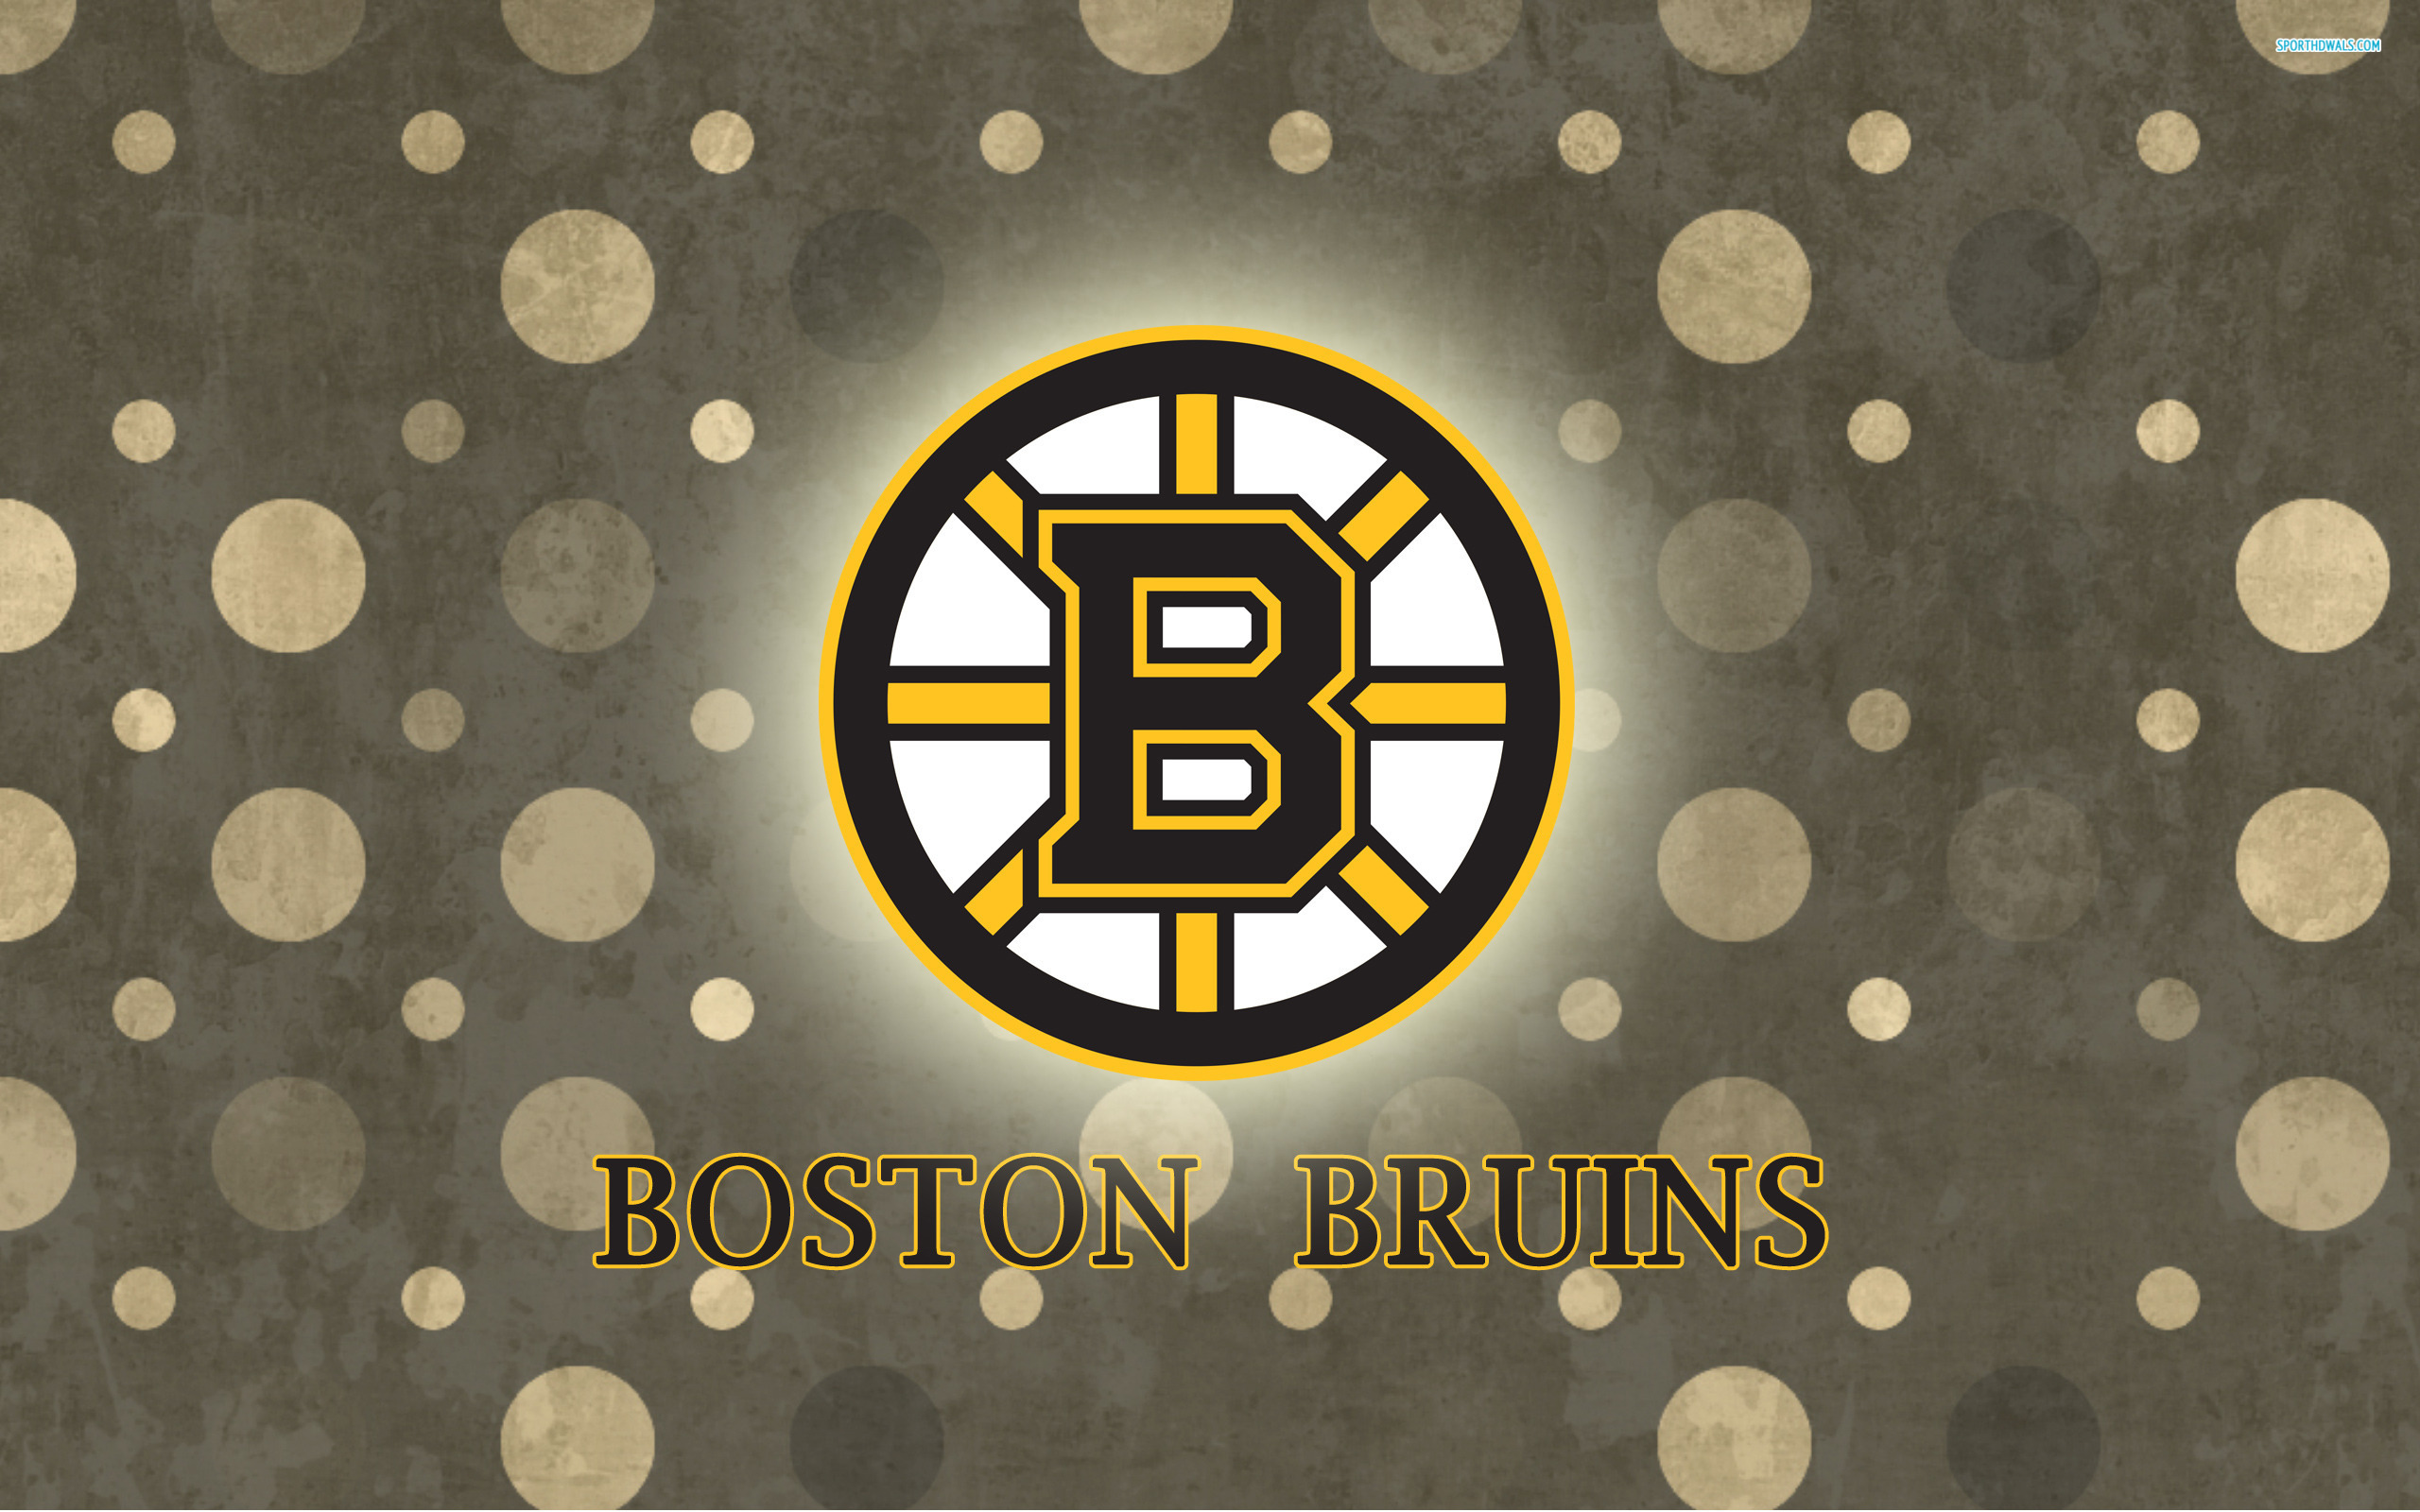 Bruins wallpaper 2560x1600 69174